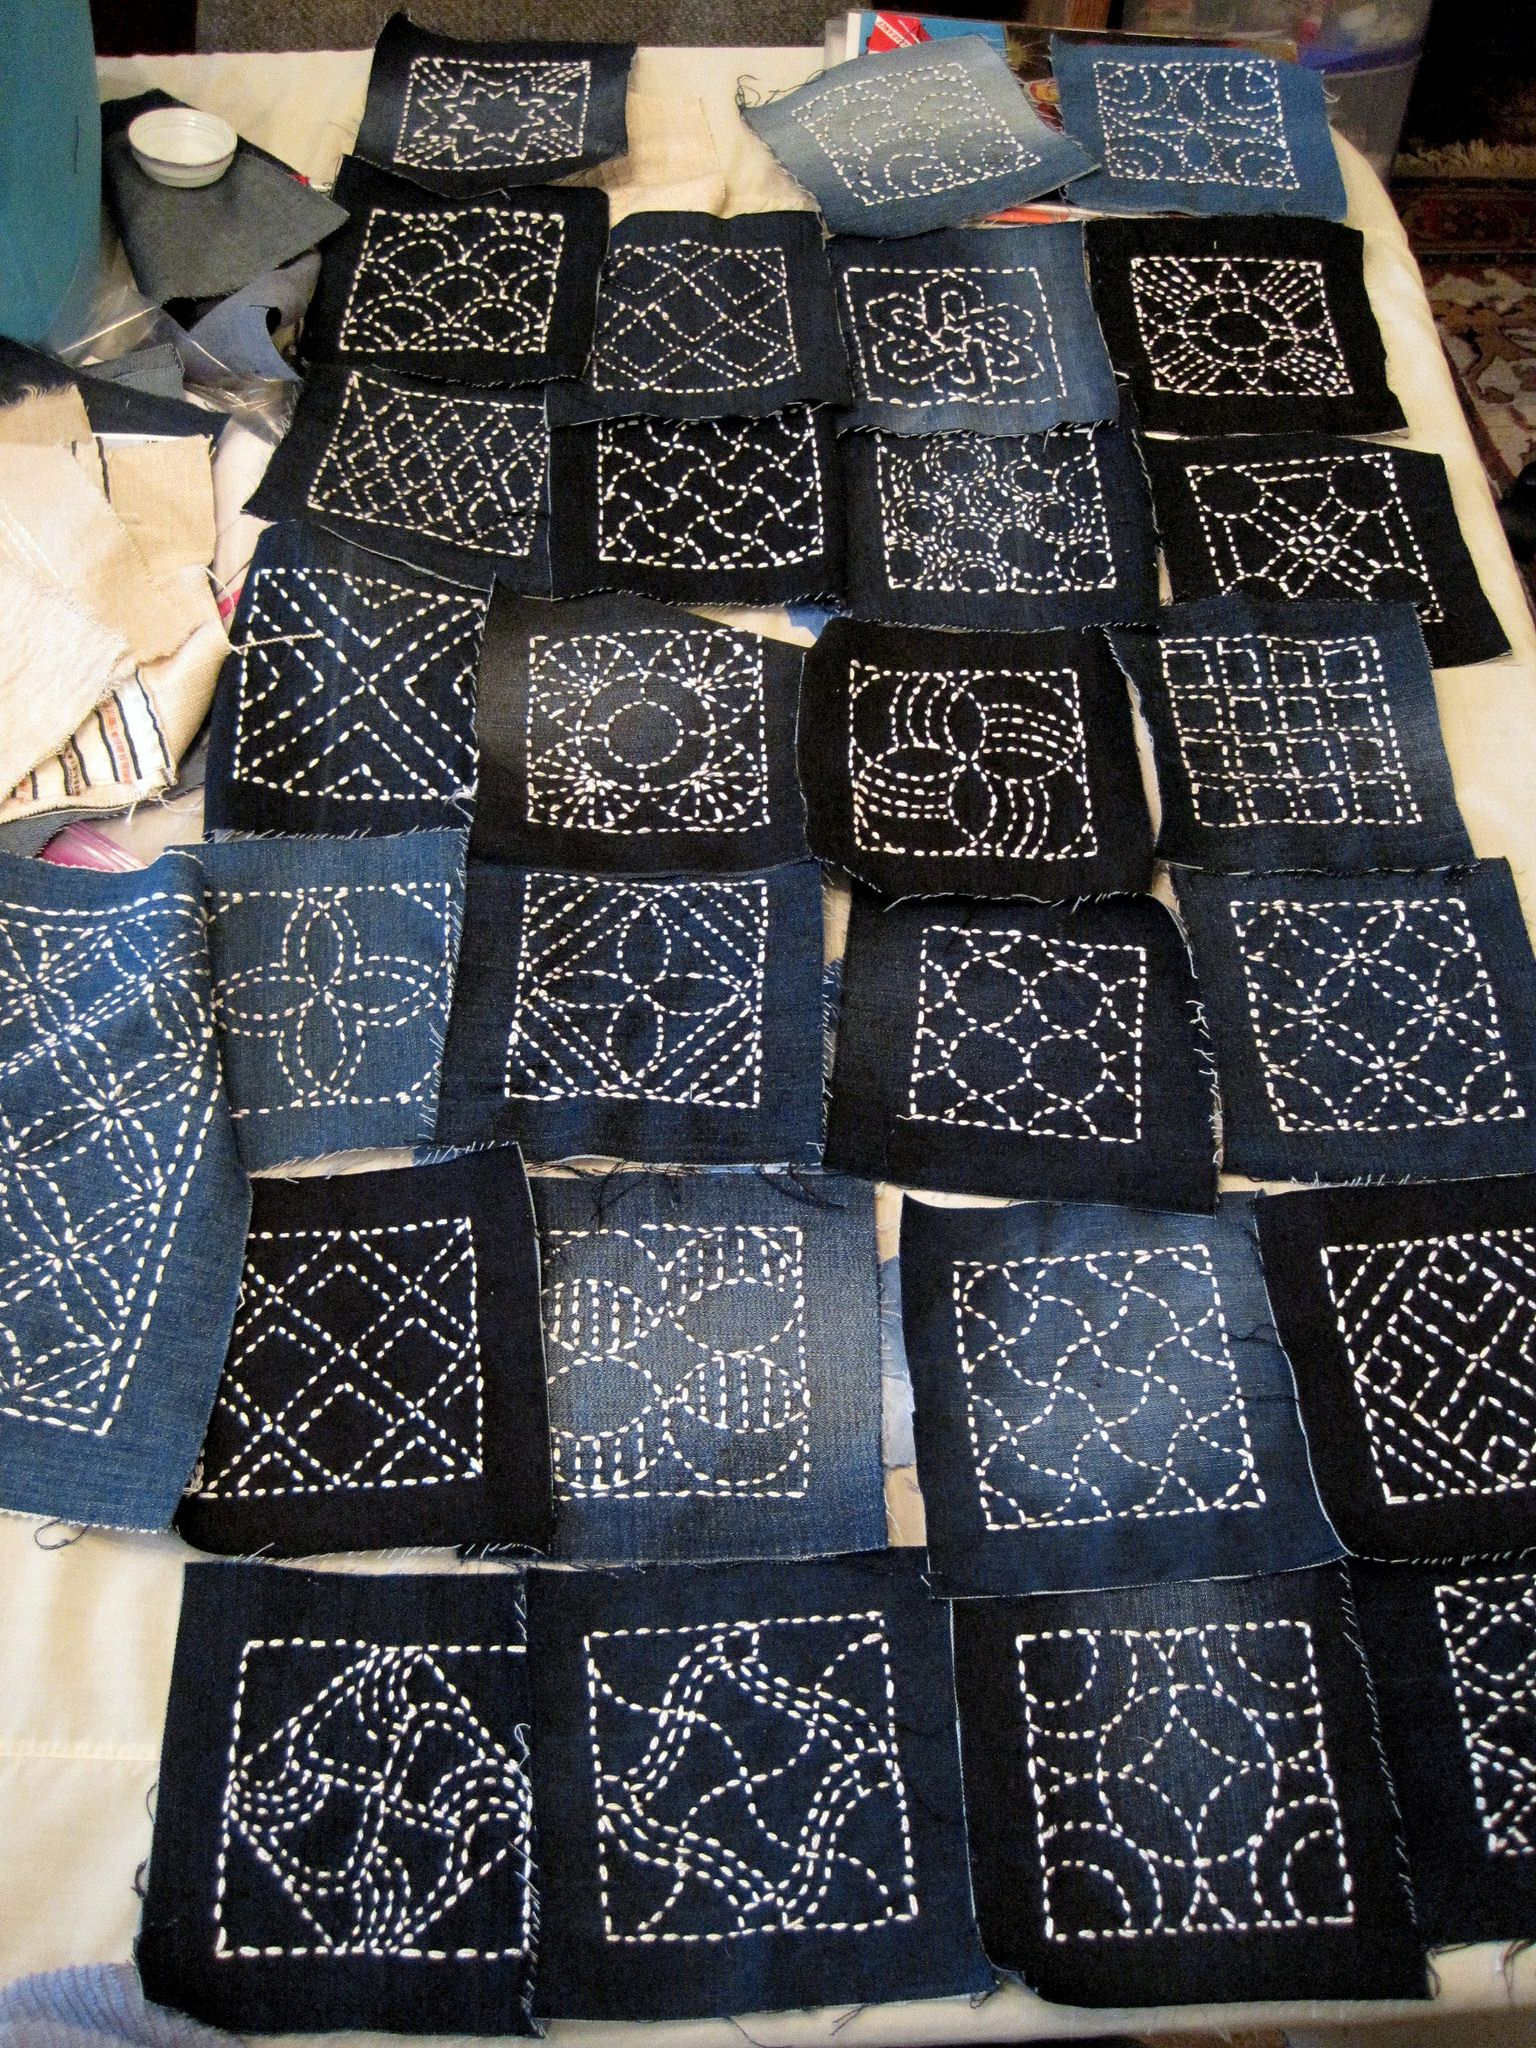 sashiko embroidery on denim